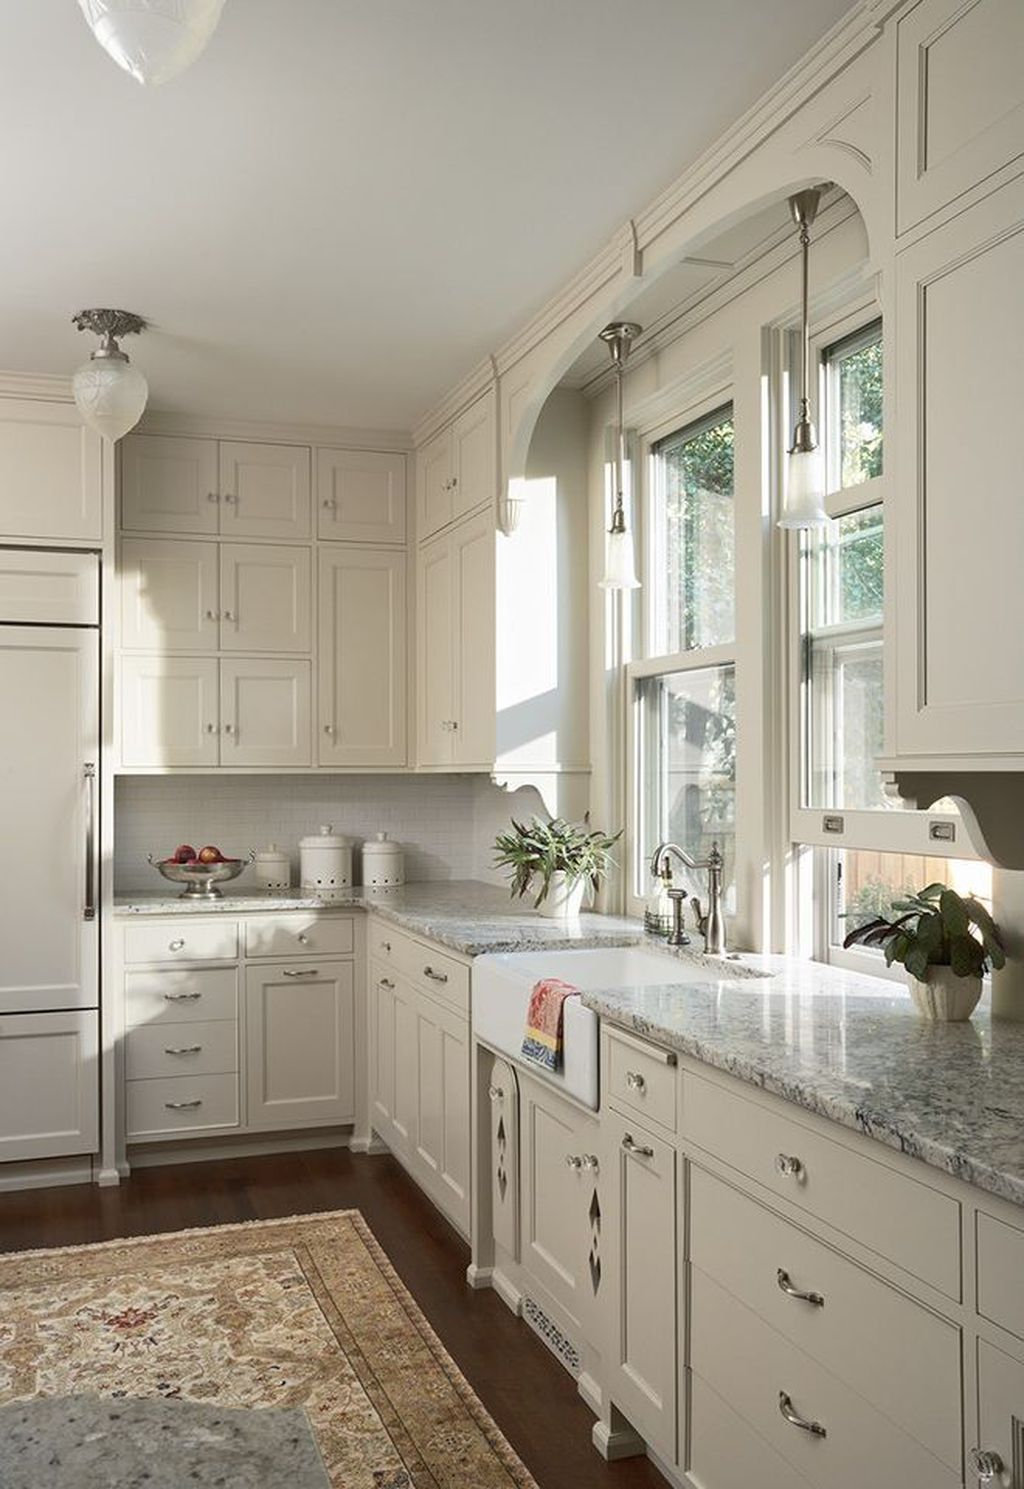 Inspiring traditional victorian kitchen remodel ideas 14 for Small victorian kitchen designs